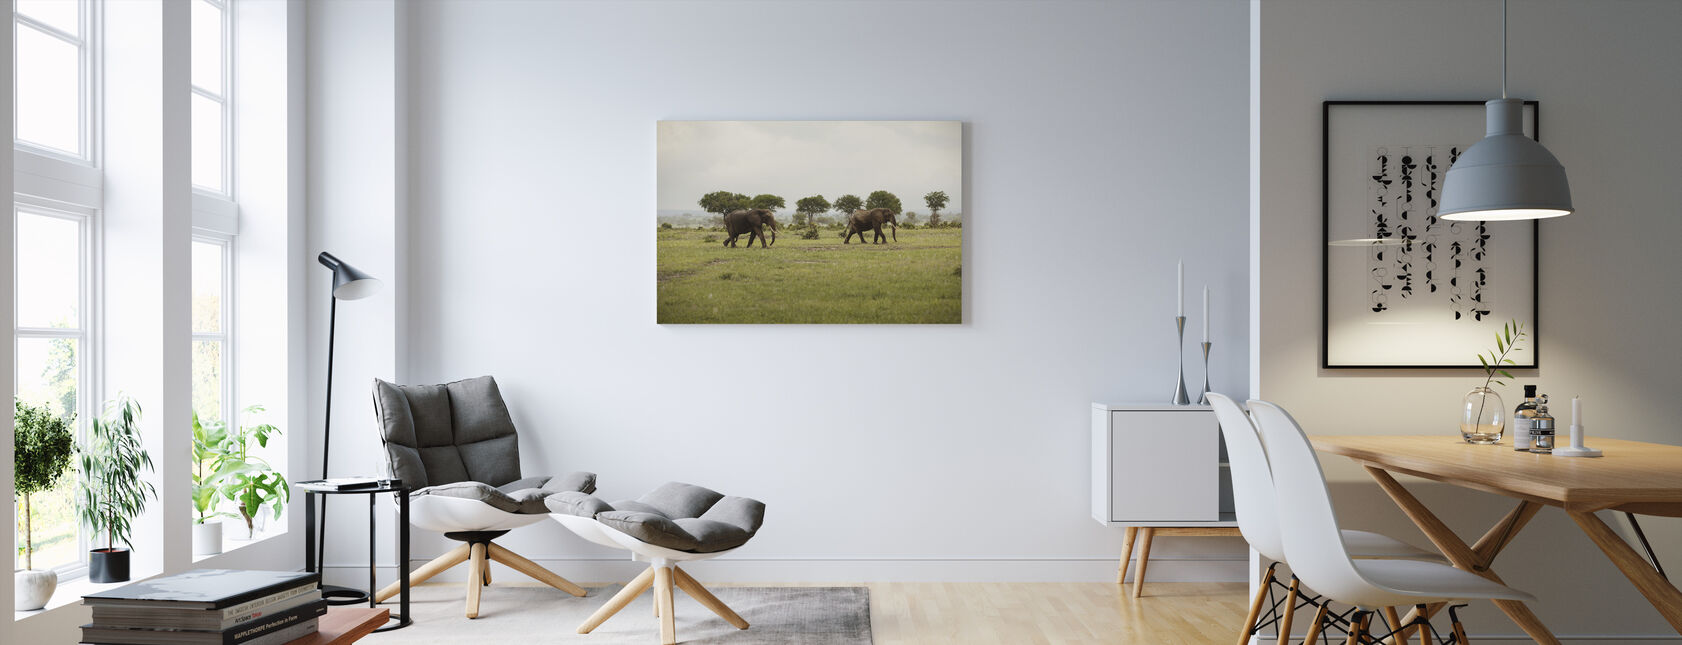 Olifanten in Nationaal Park - Canvas print - Woonkamer